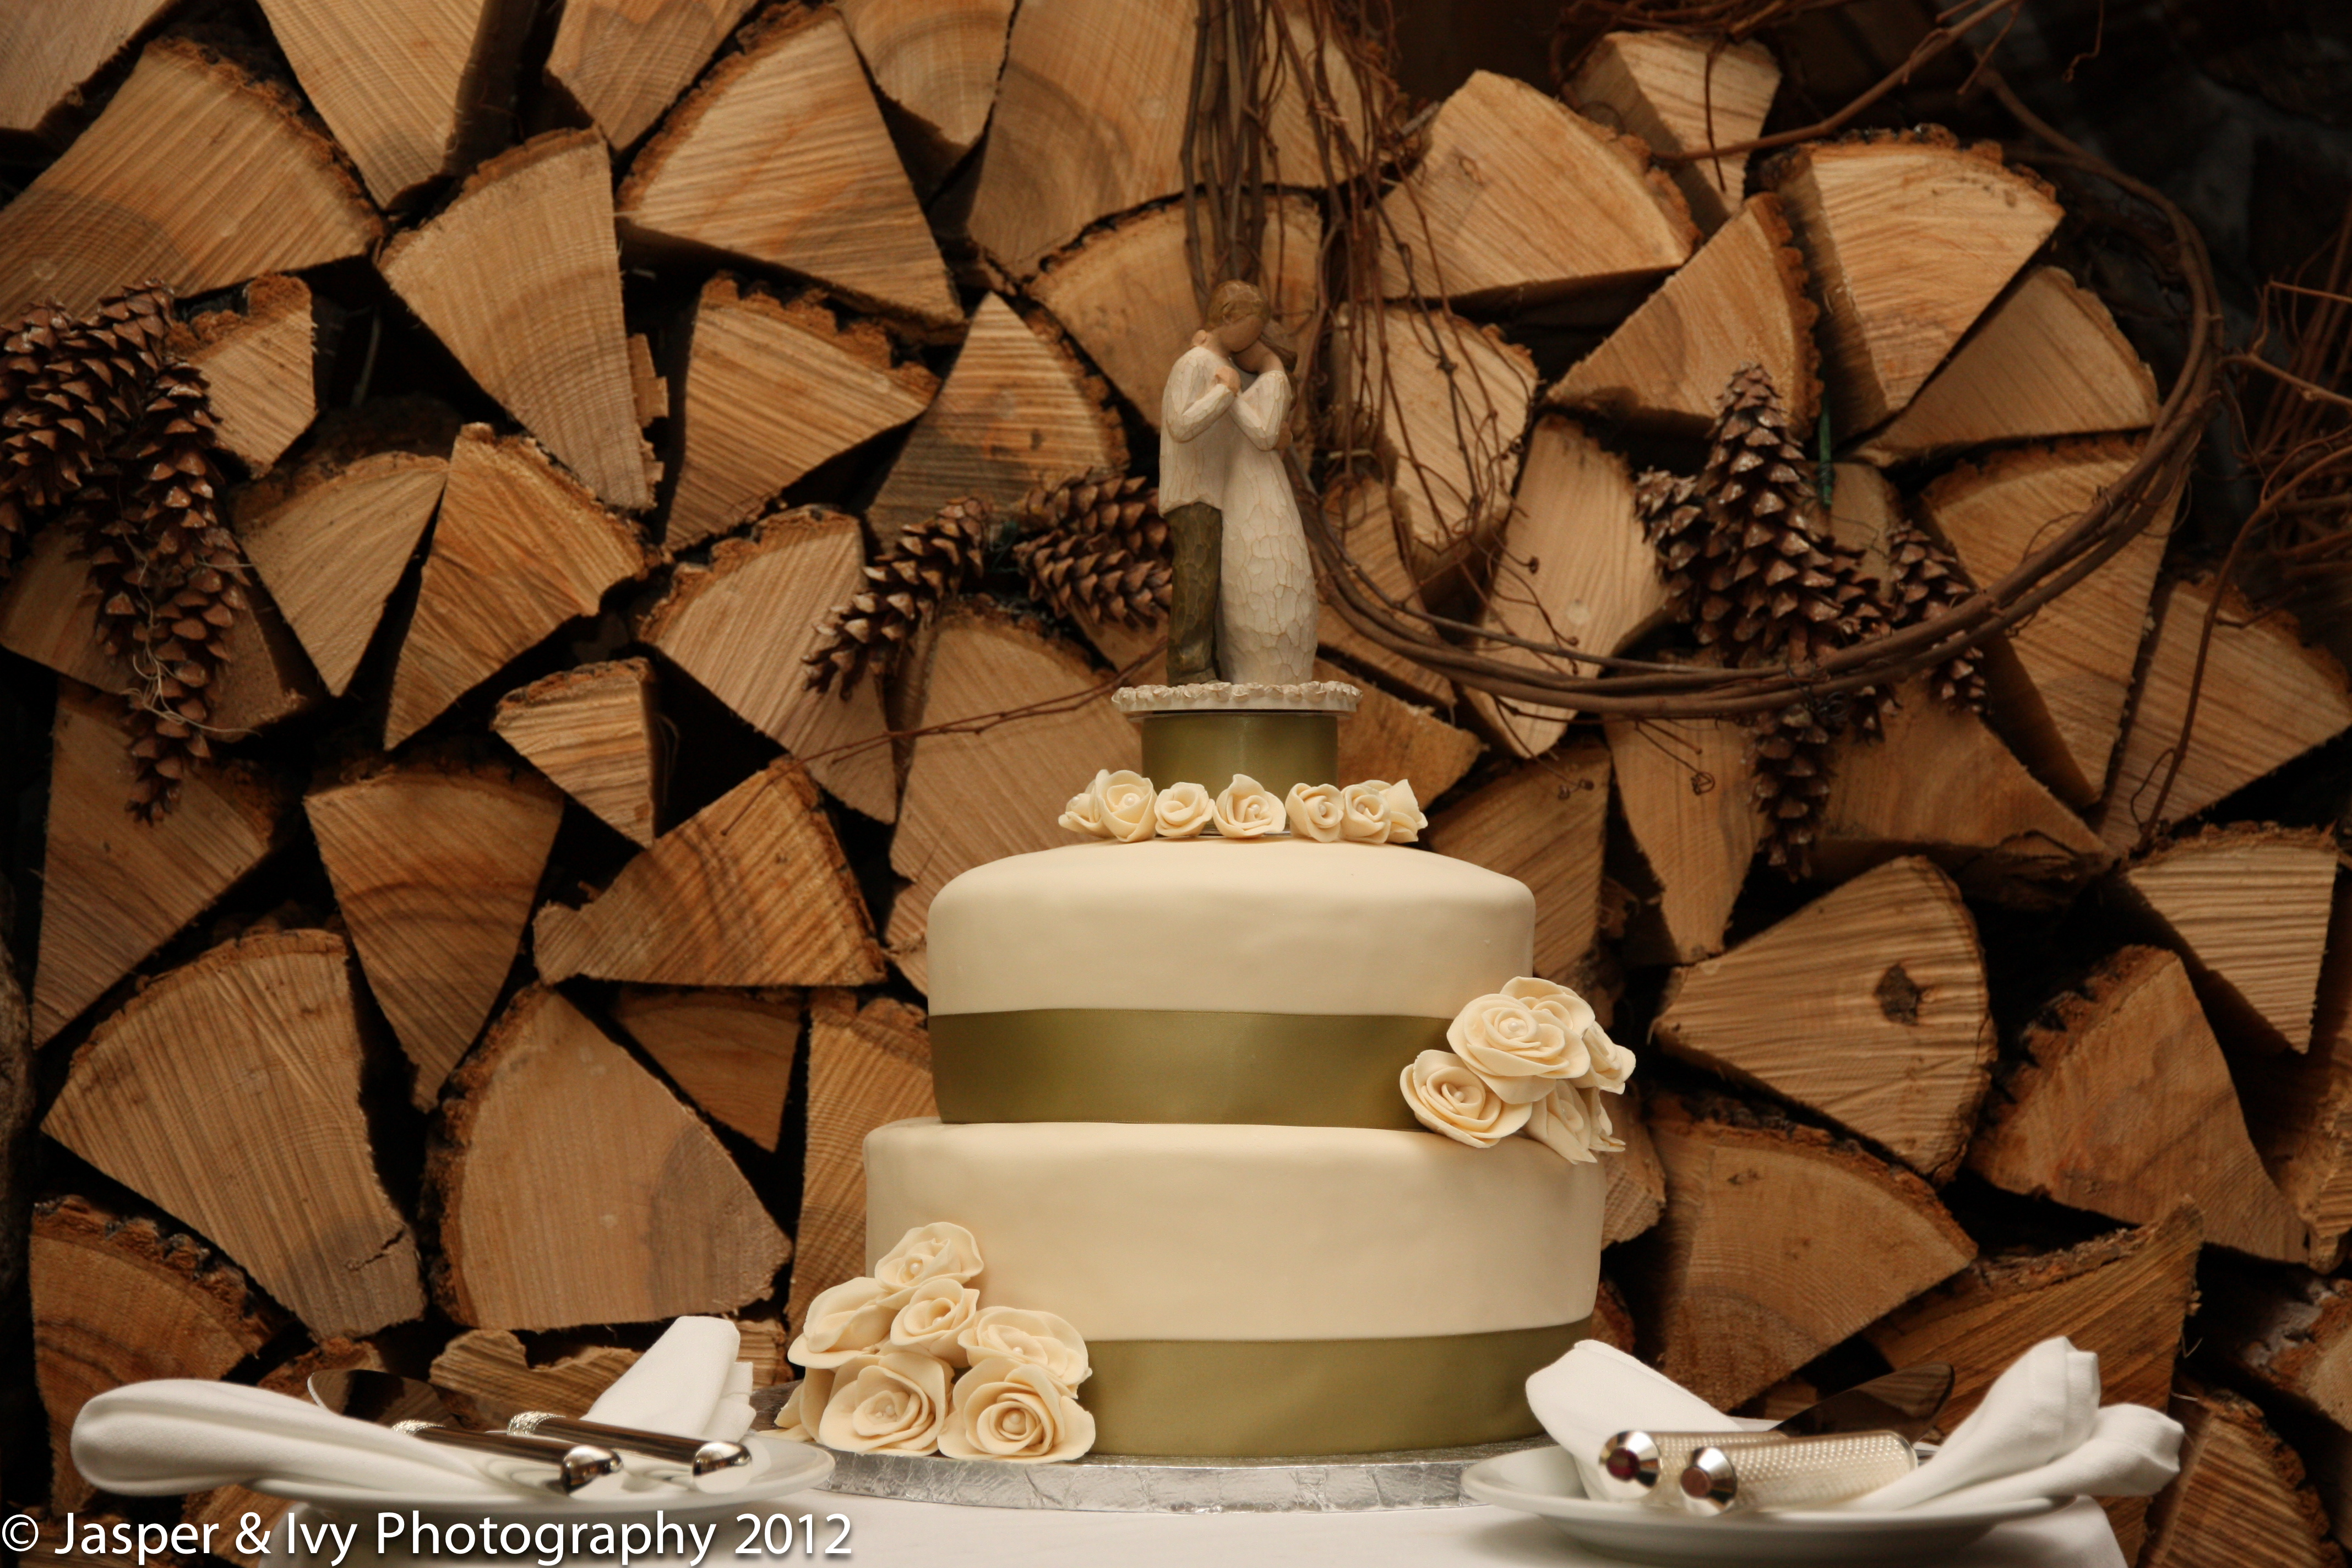 New Hampshire Barn Weddings Venue shows a simple, elegant wedding cake.